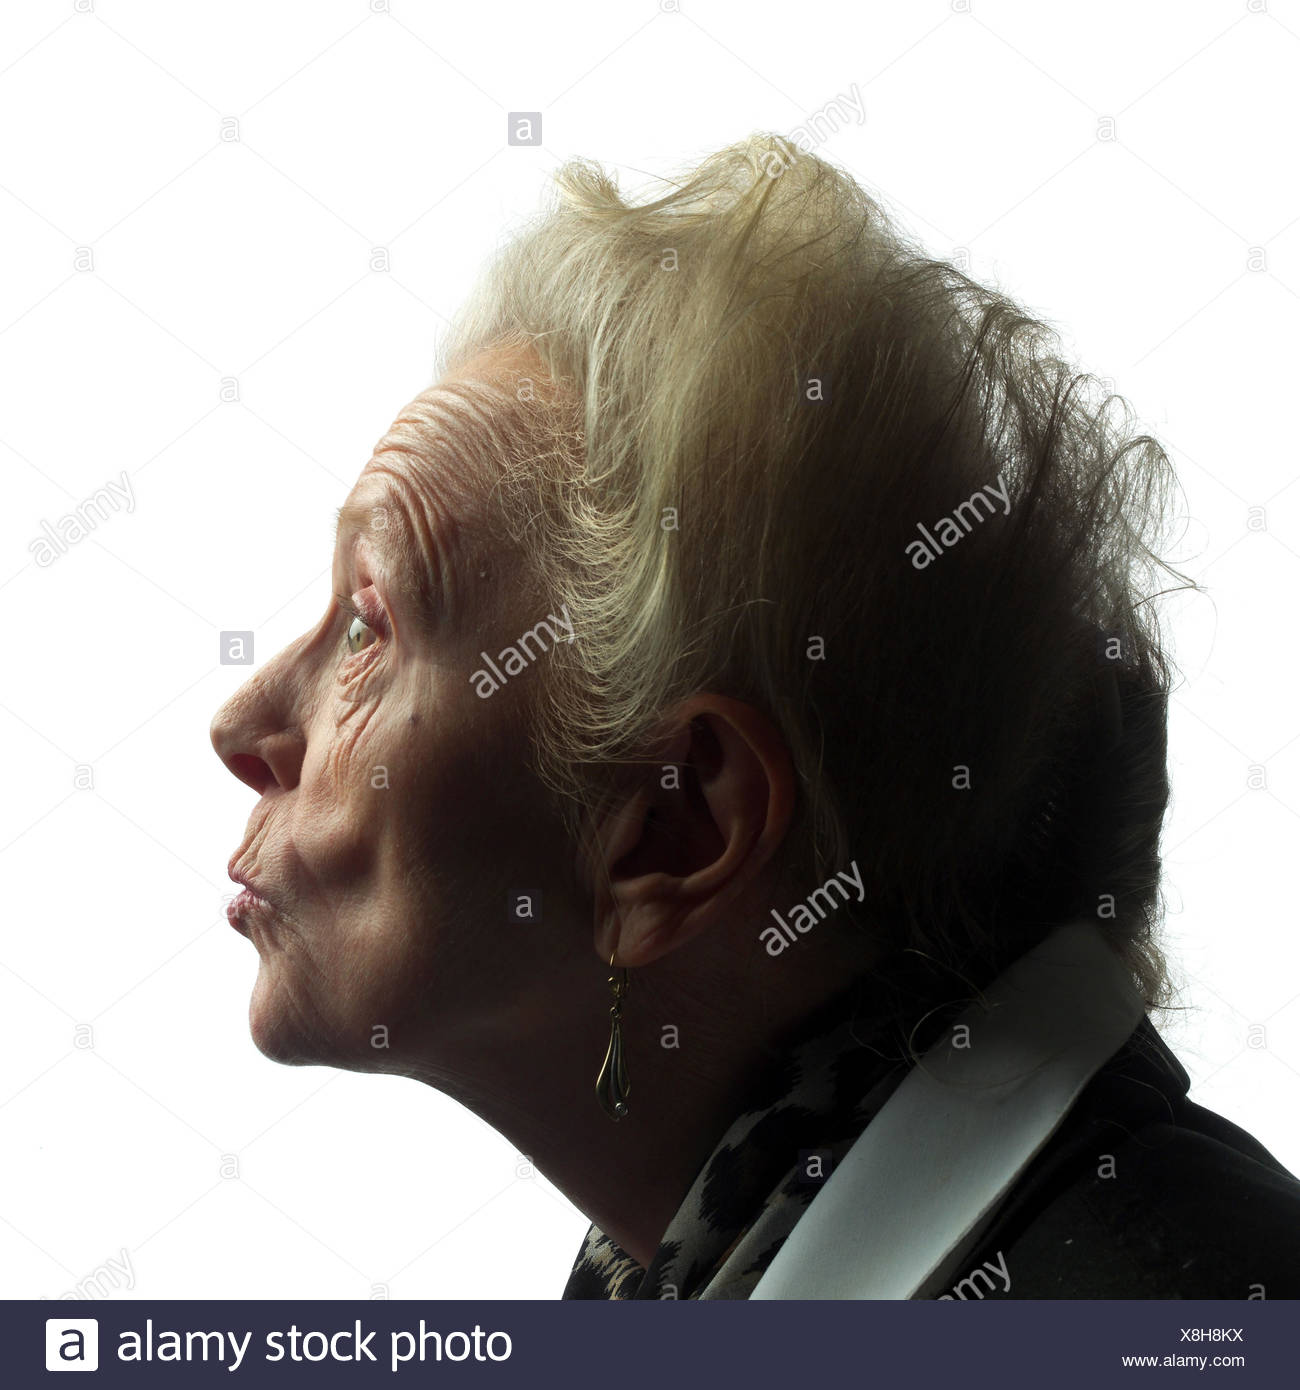 Senior, annoys, tread, model released, studio, cut out, pensioner, woman, old, old age, look, shell, creased, folds, strictly, outrages, outrages, annoys nastily, furiously, get angry, expression, facial play Stock Photo